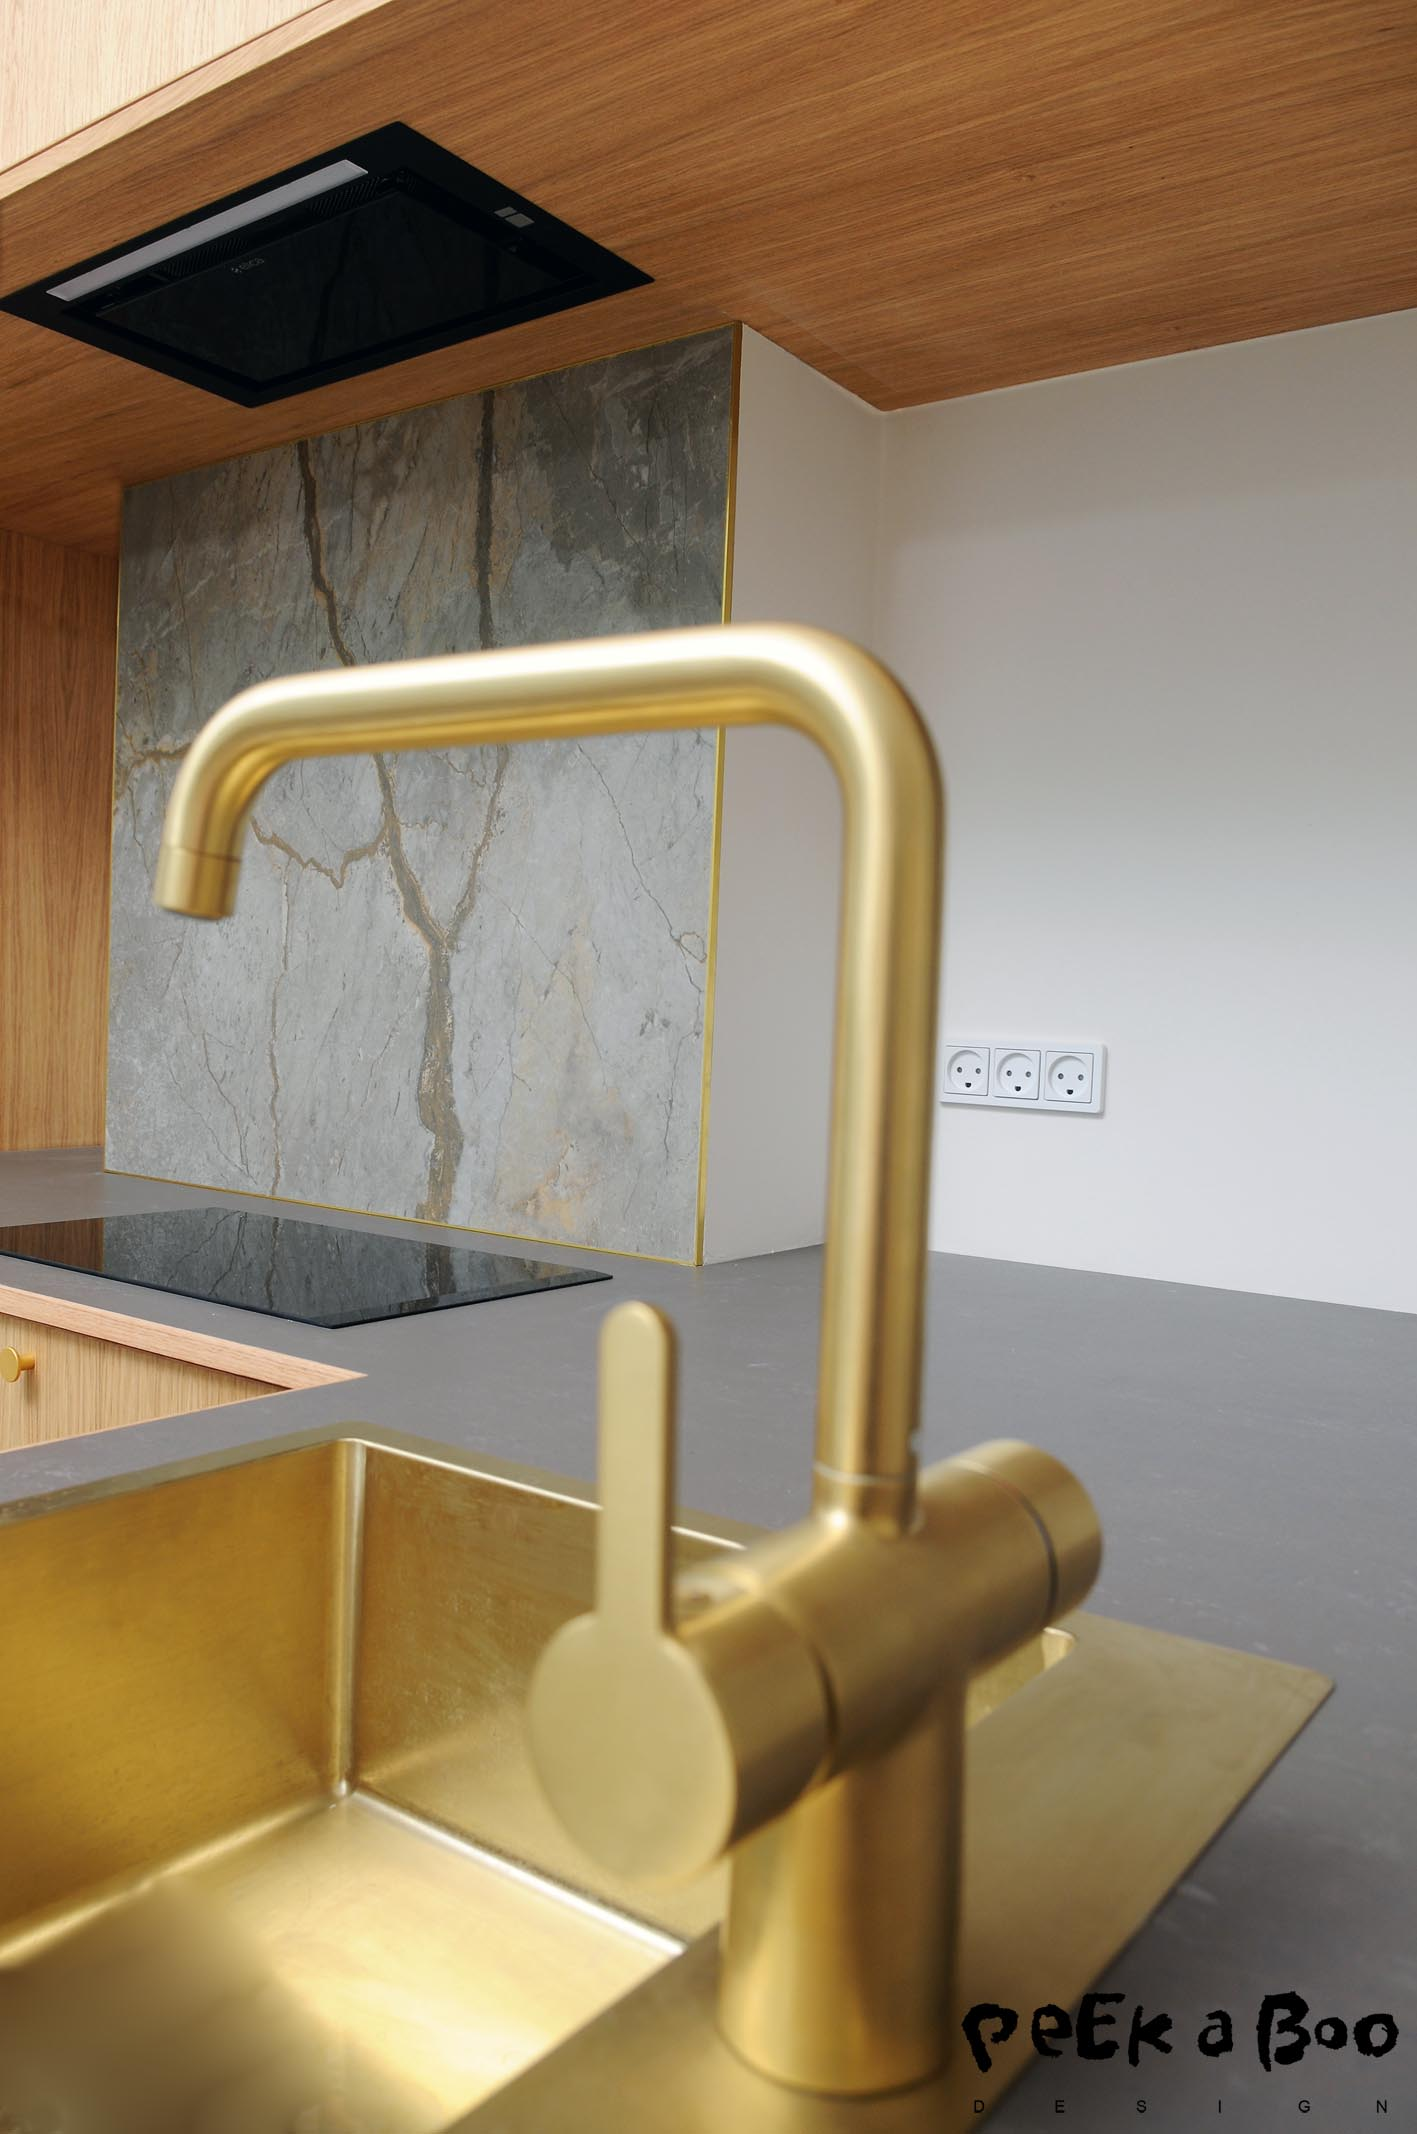 All the brass details, the zink, the tap and the handles and even the edge on the ceramic backsplash from Mosaikhjørnet.